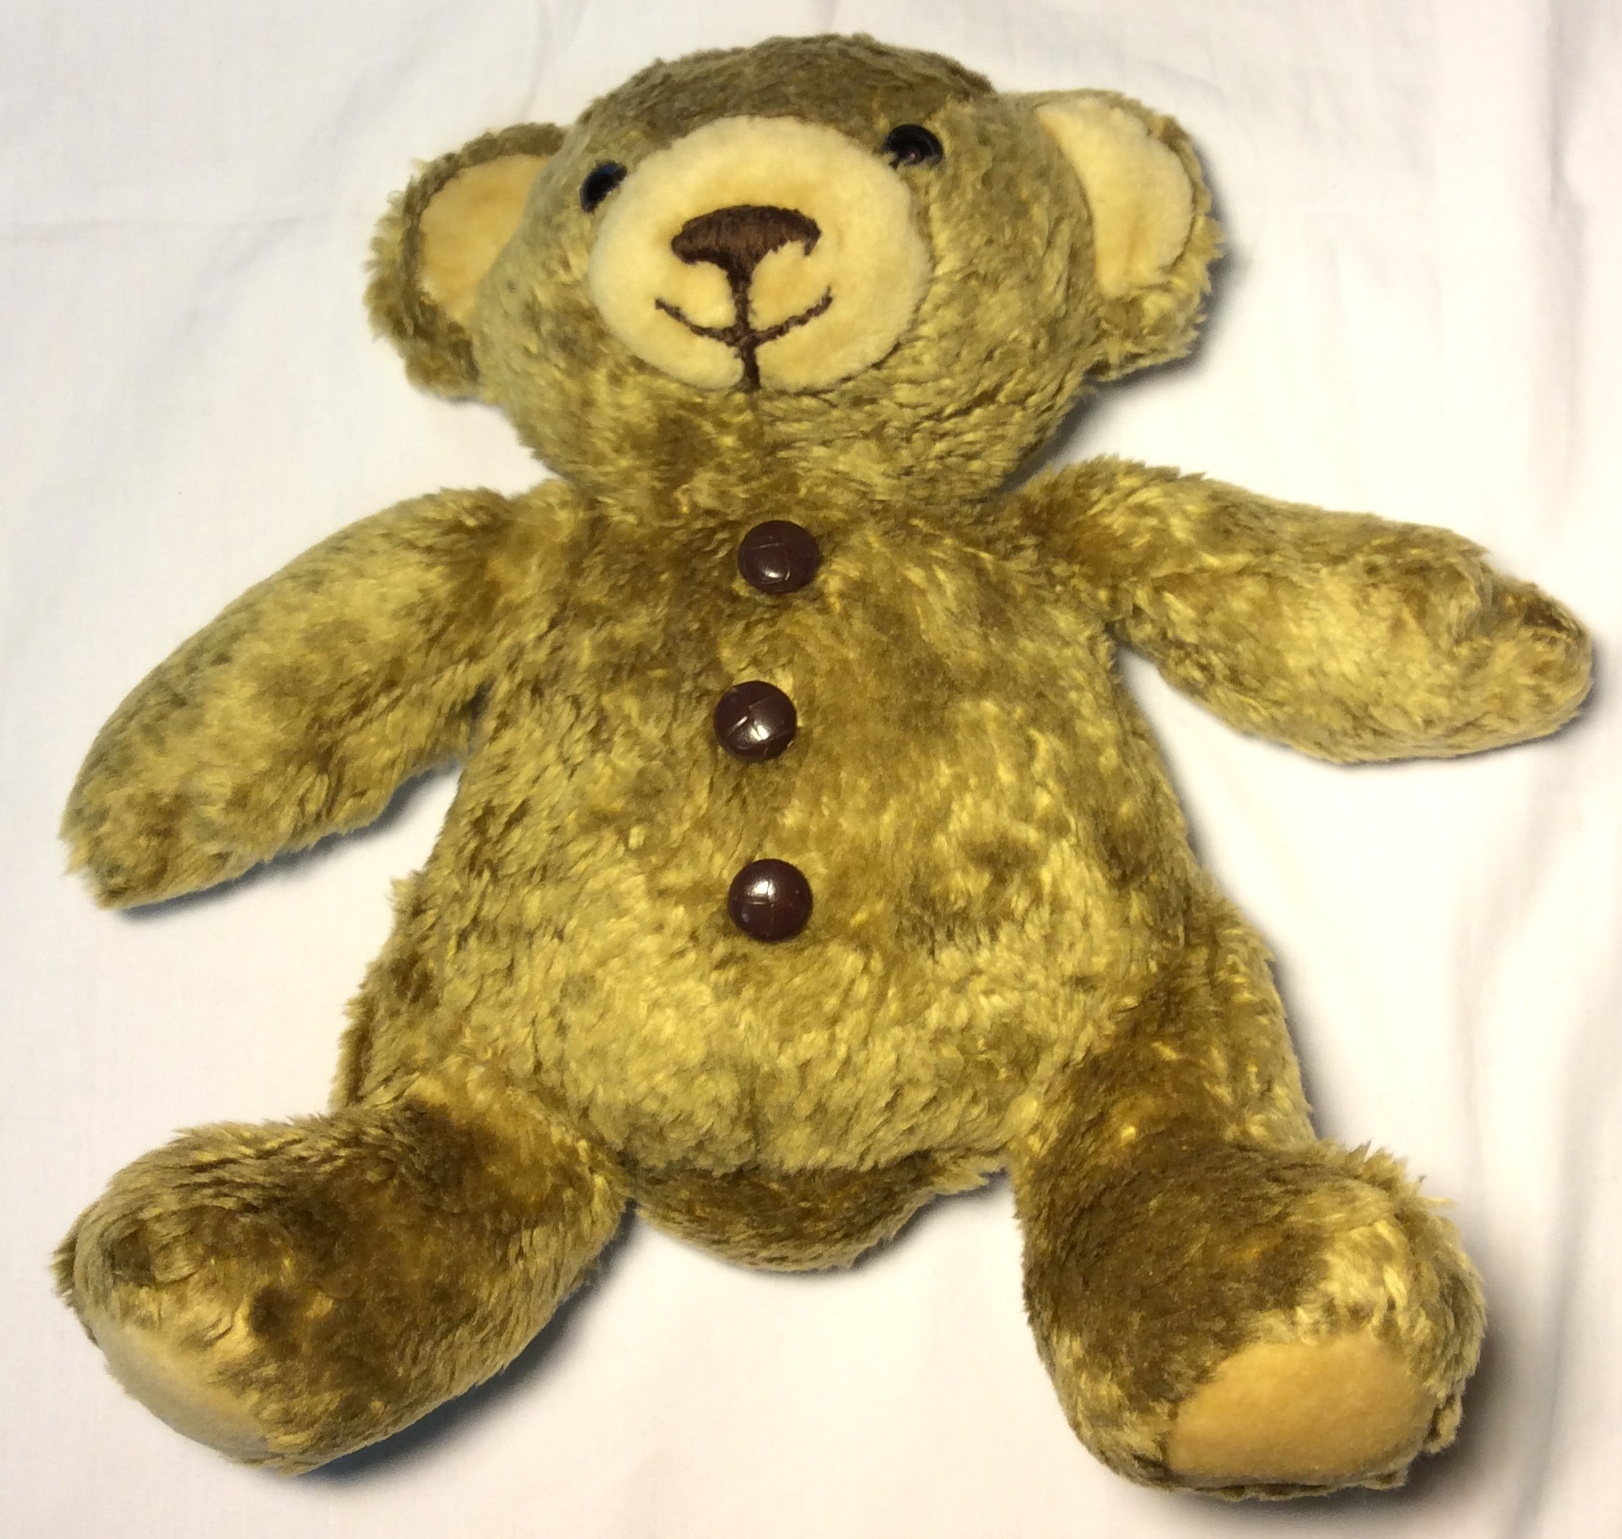 Soft golden brown teddy bear cam